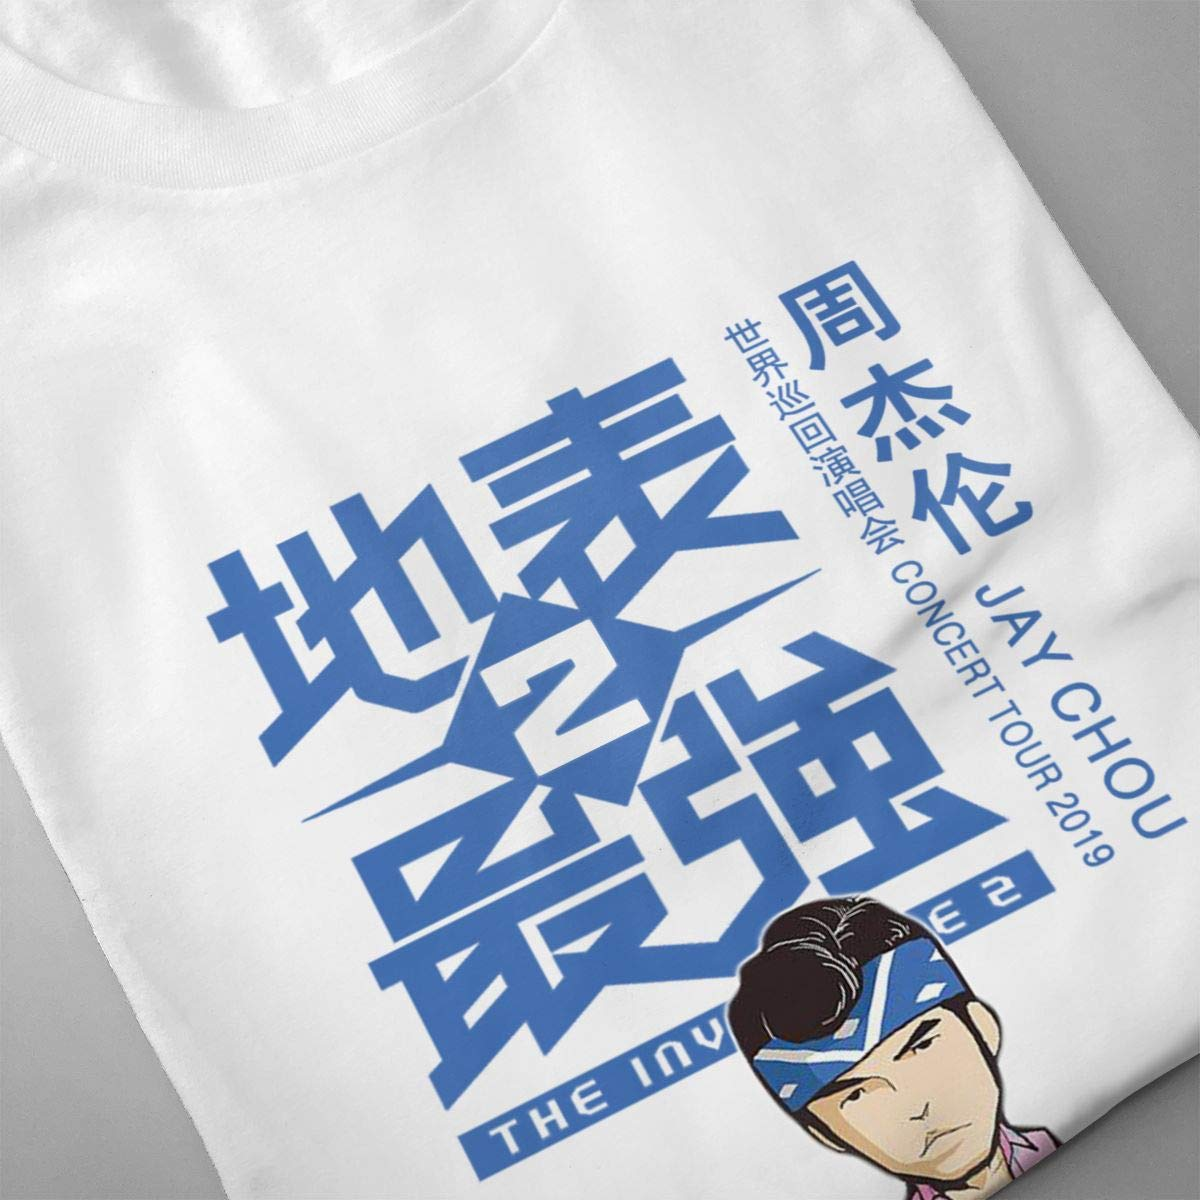 Amazon.com: ILLUSORY Jay CHOU Concert Tour 2019 O - Camiseta ...